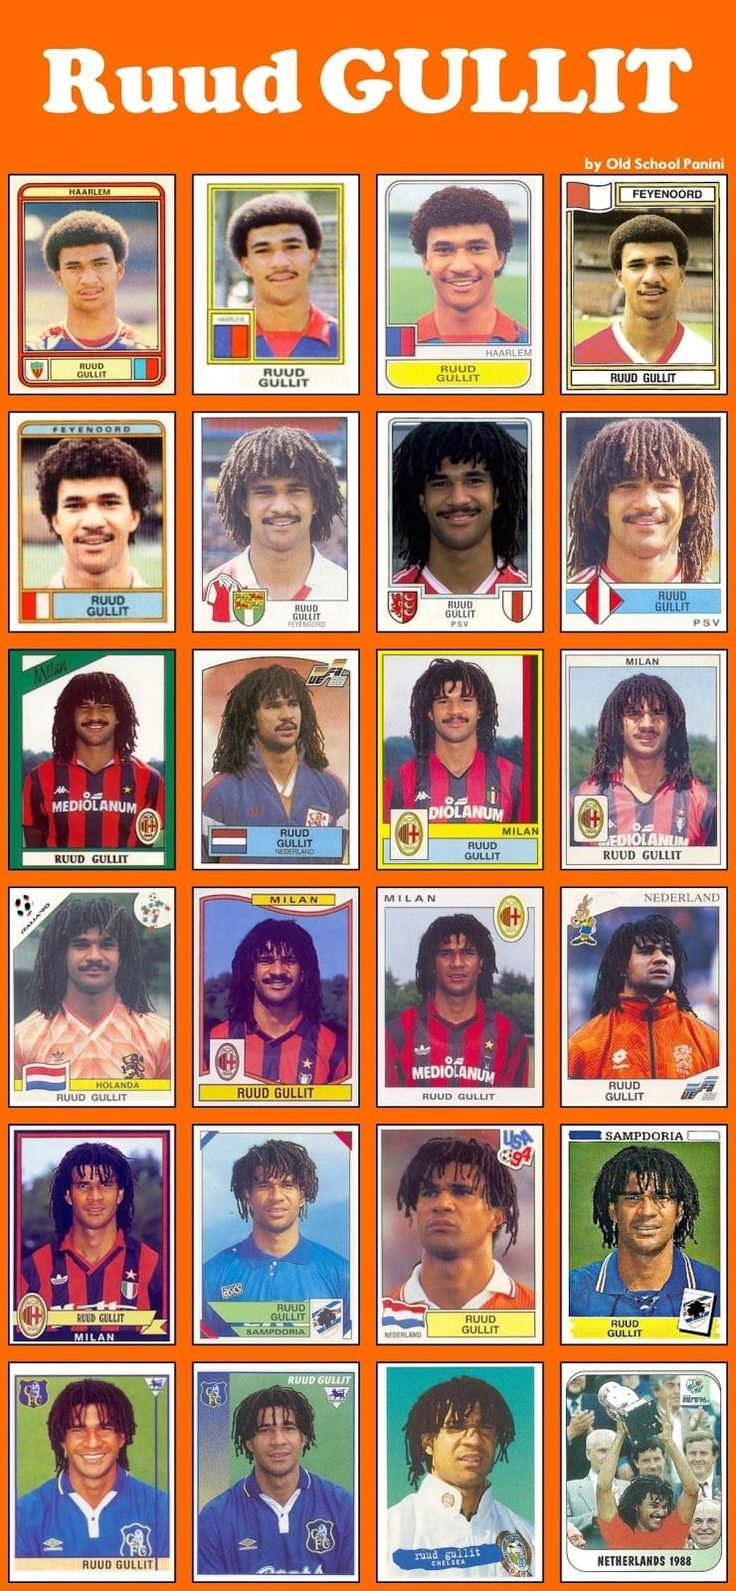 Happy Birthday to Ruud GULLIT pic.twitter.com/uURiBwGYhl